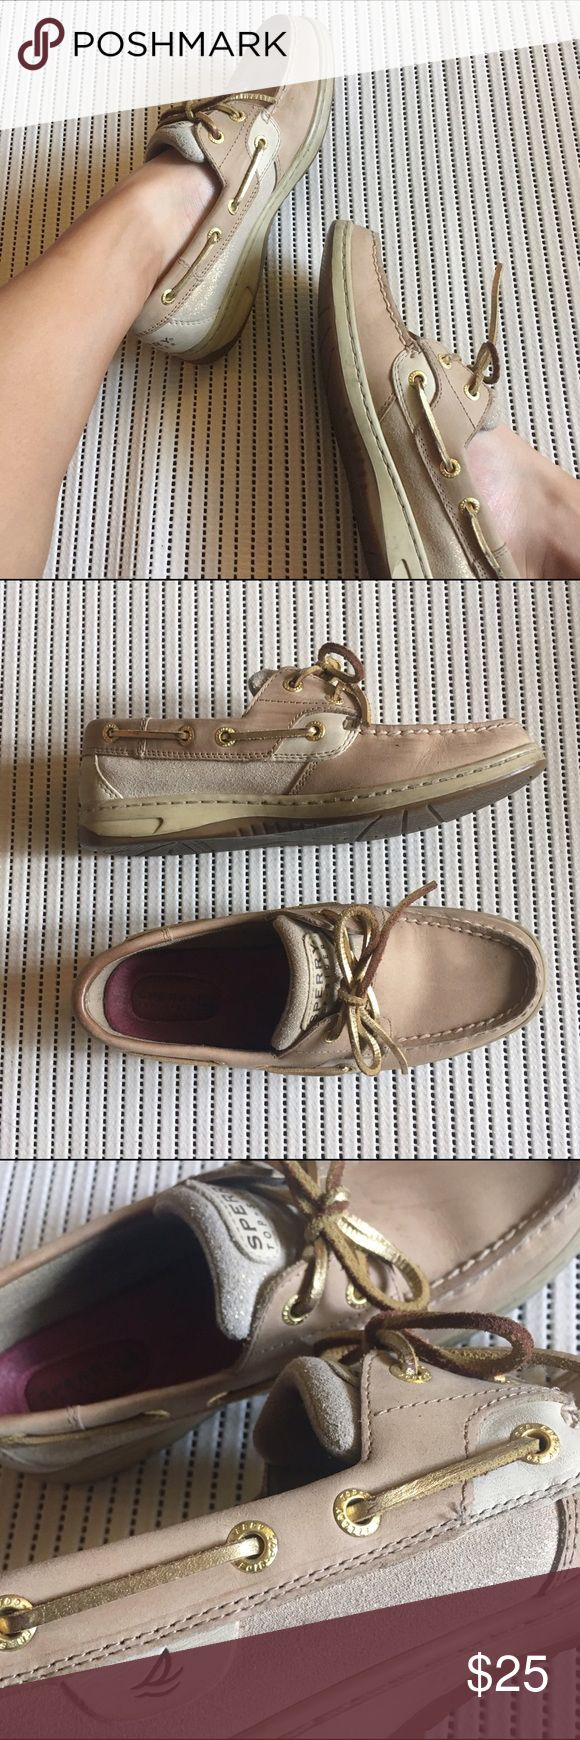 Gold Accent Sperry Boat Shoes Lightly worn Sperry boat shoes, in good condition. Tongue and sides have light gold accenting. Very simple design, but still very cute. Sperry Top-Sider Shoes Flats & Loafers